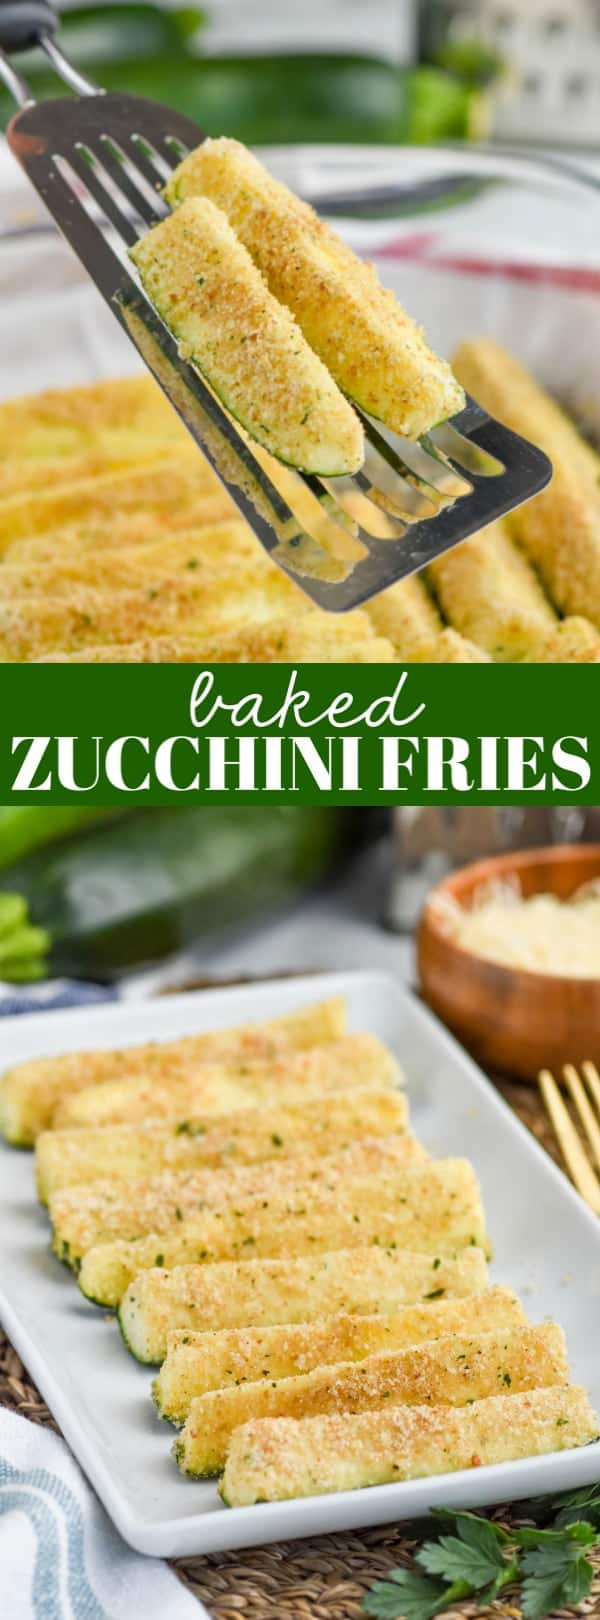 spatula holding zucchini fries recipe